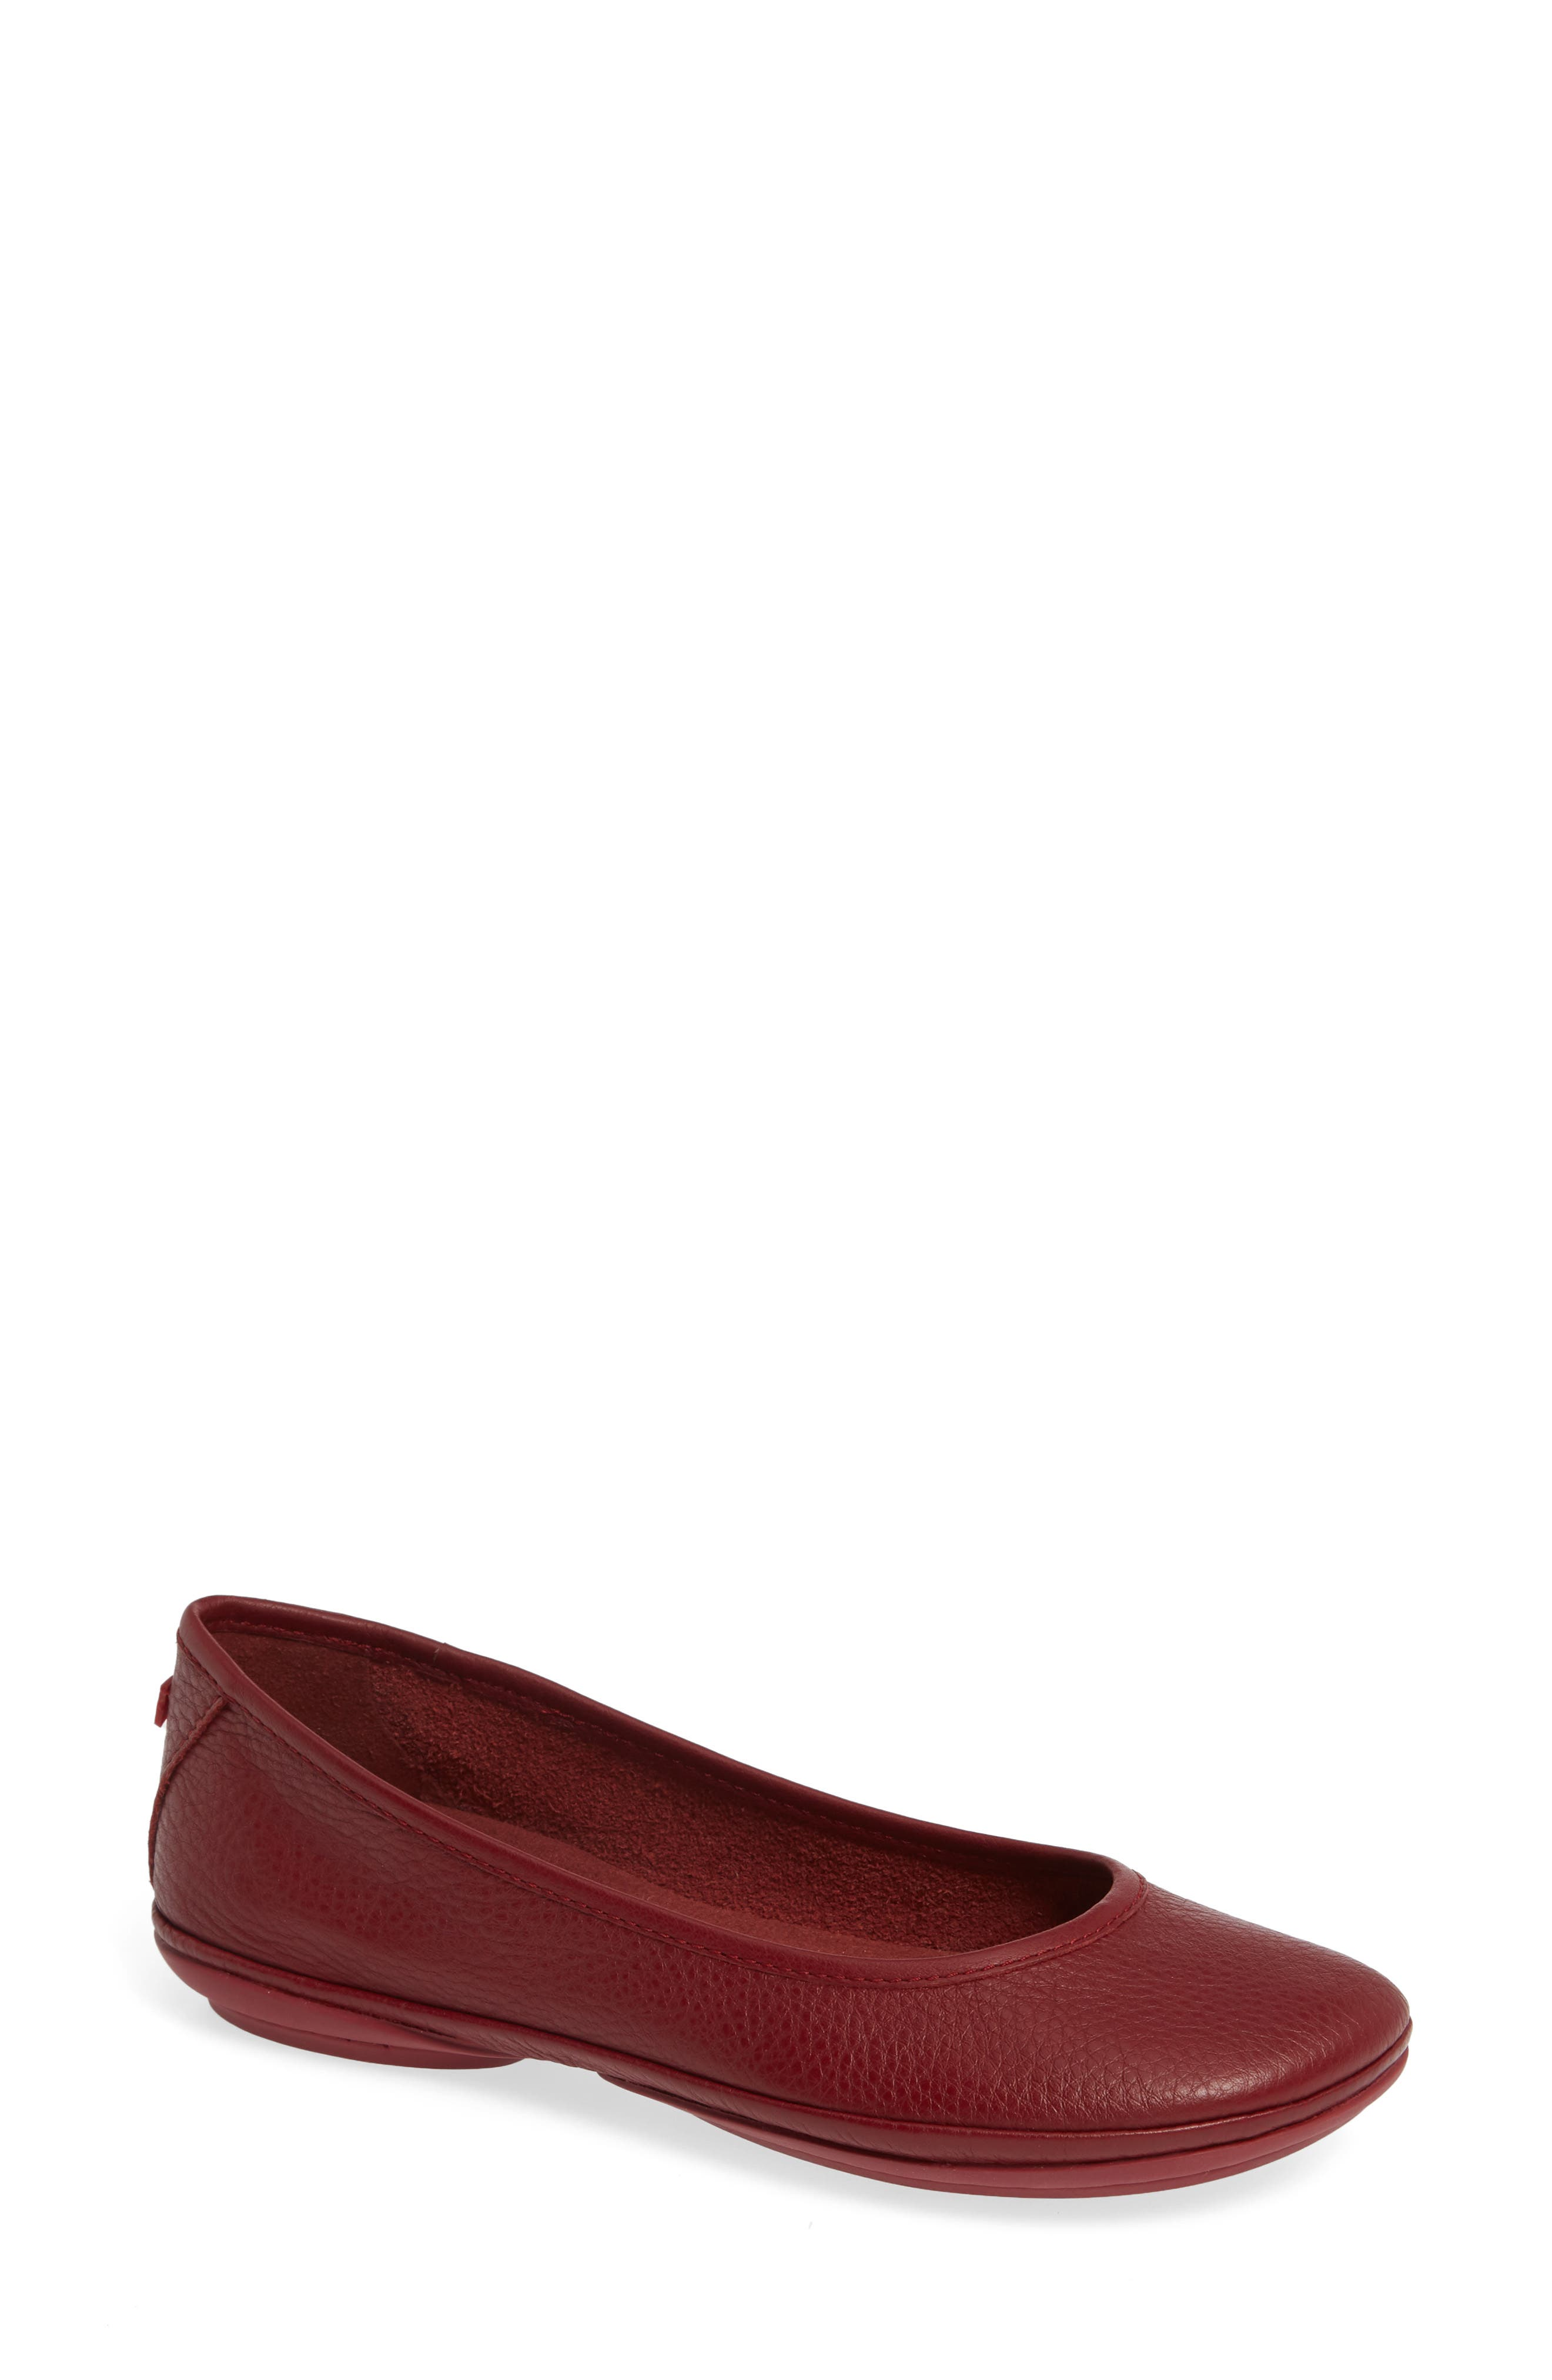 Right Nina Ballet Flat,                         Main,                         color, RED LEATHER